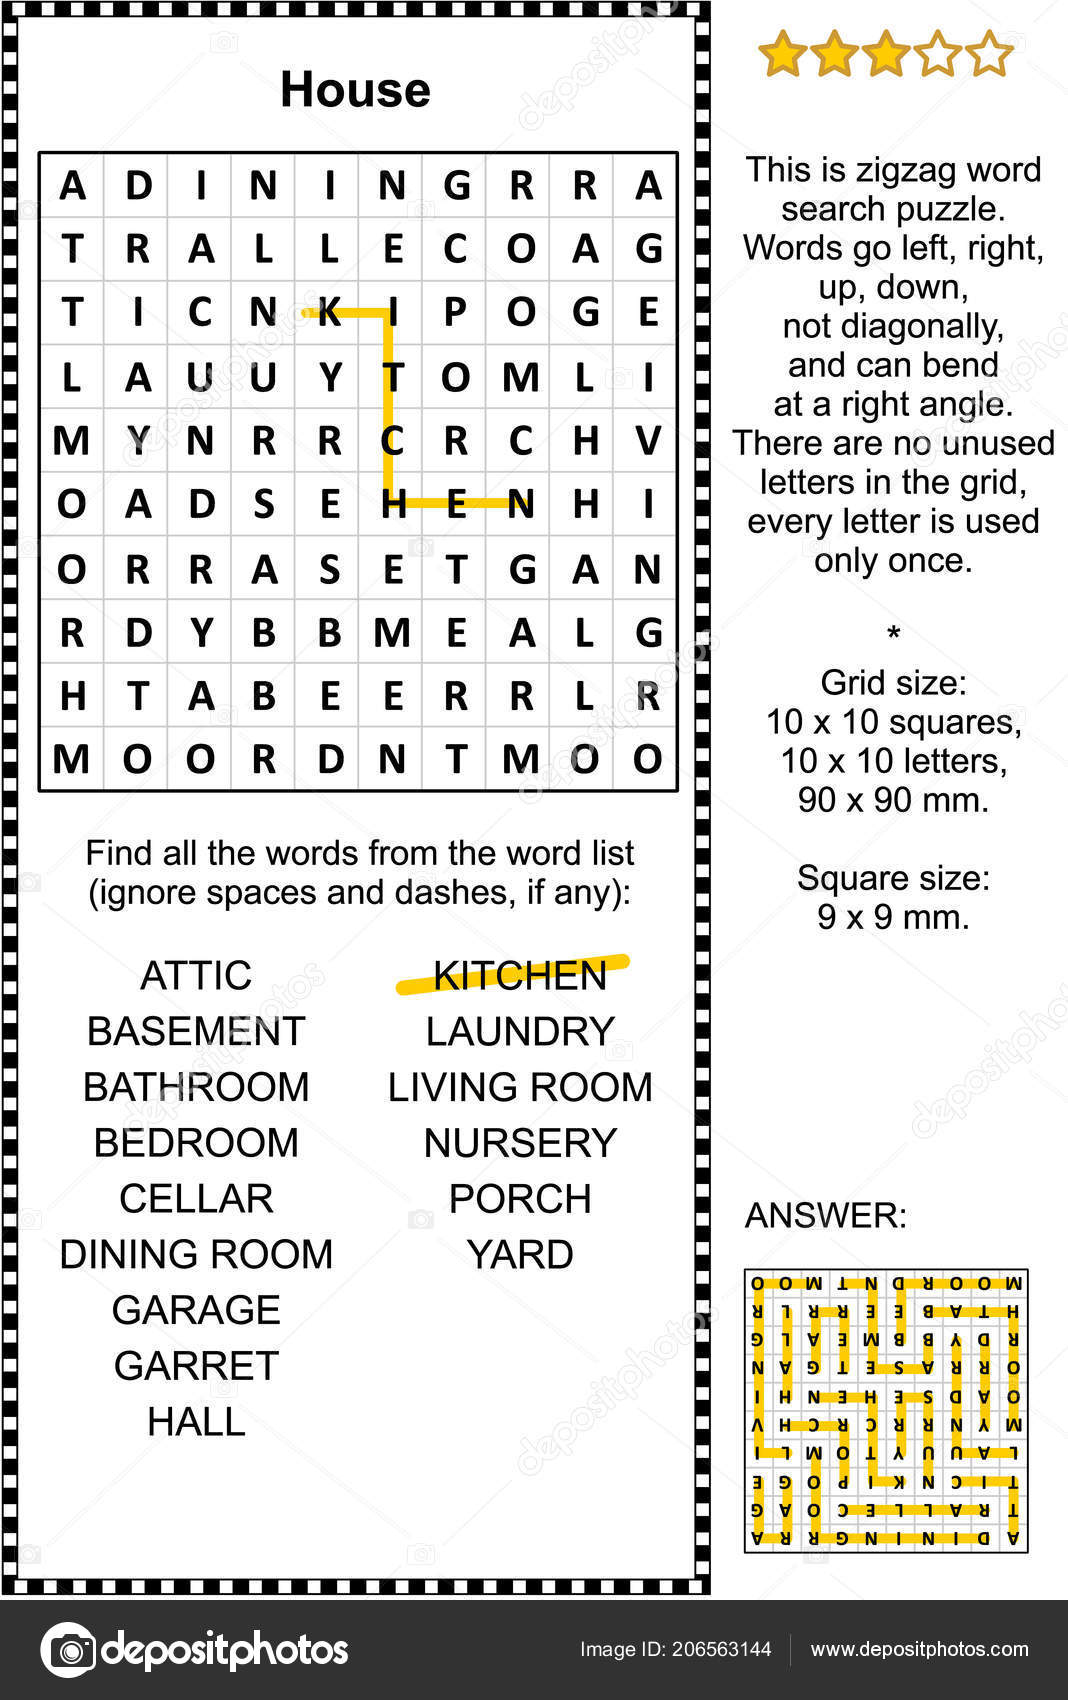 House Themed Zigzag Word Search Puzzle Suitable Both Kids Adults ...